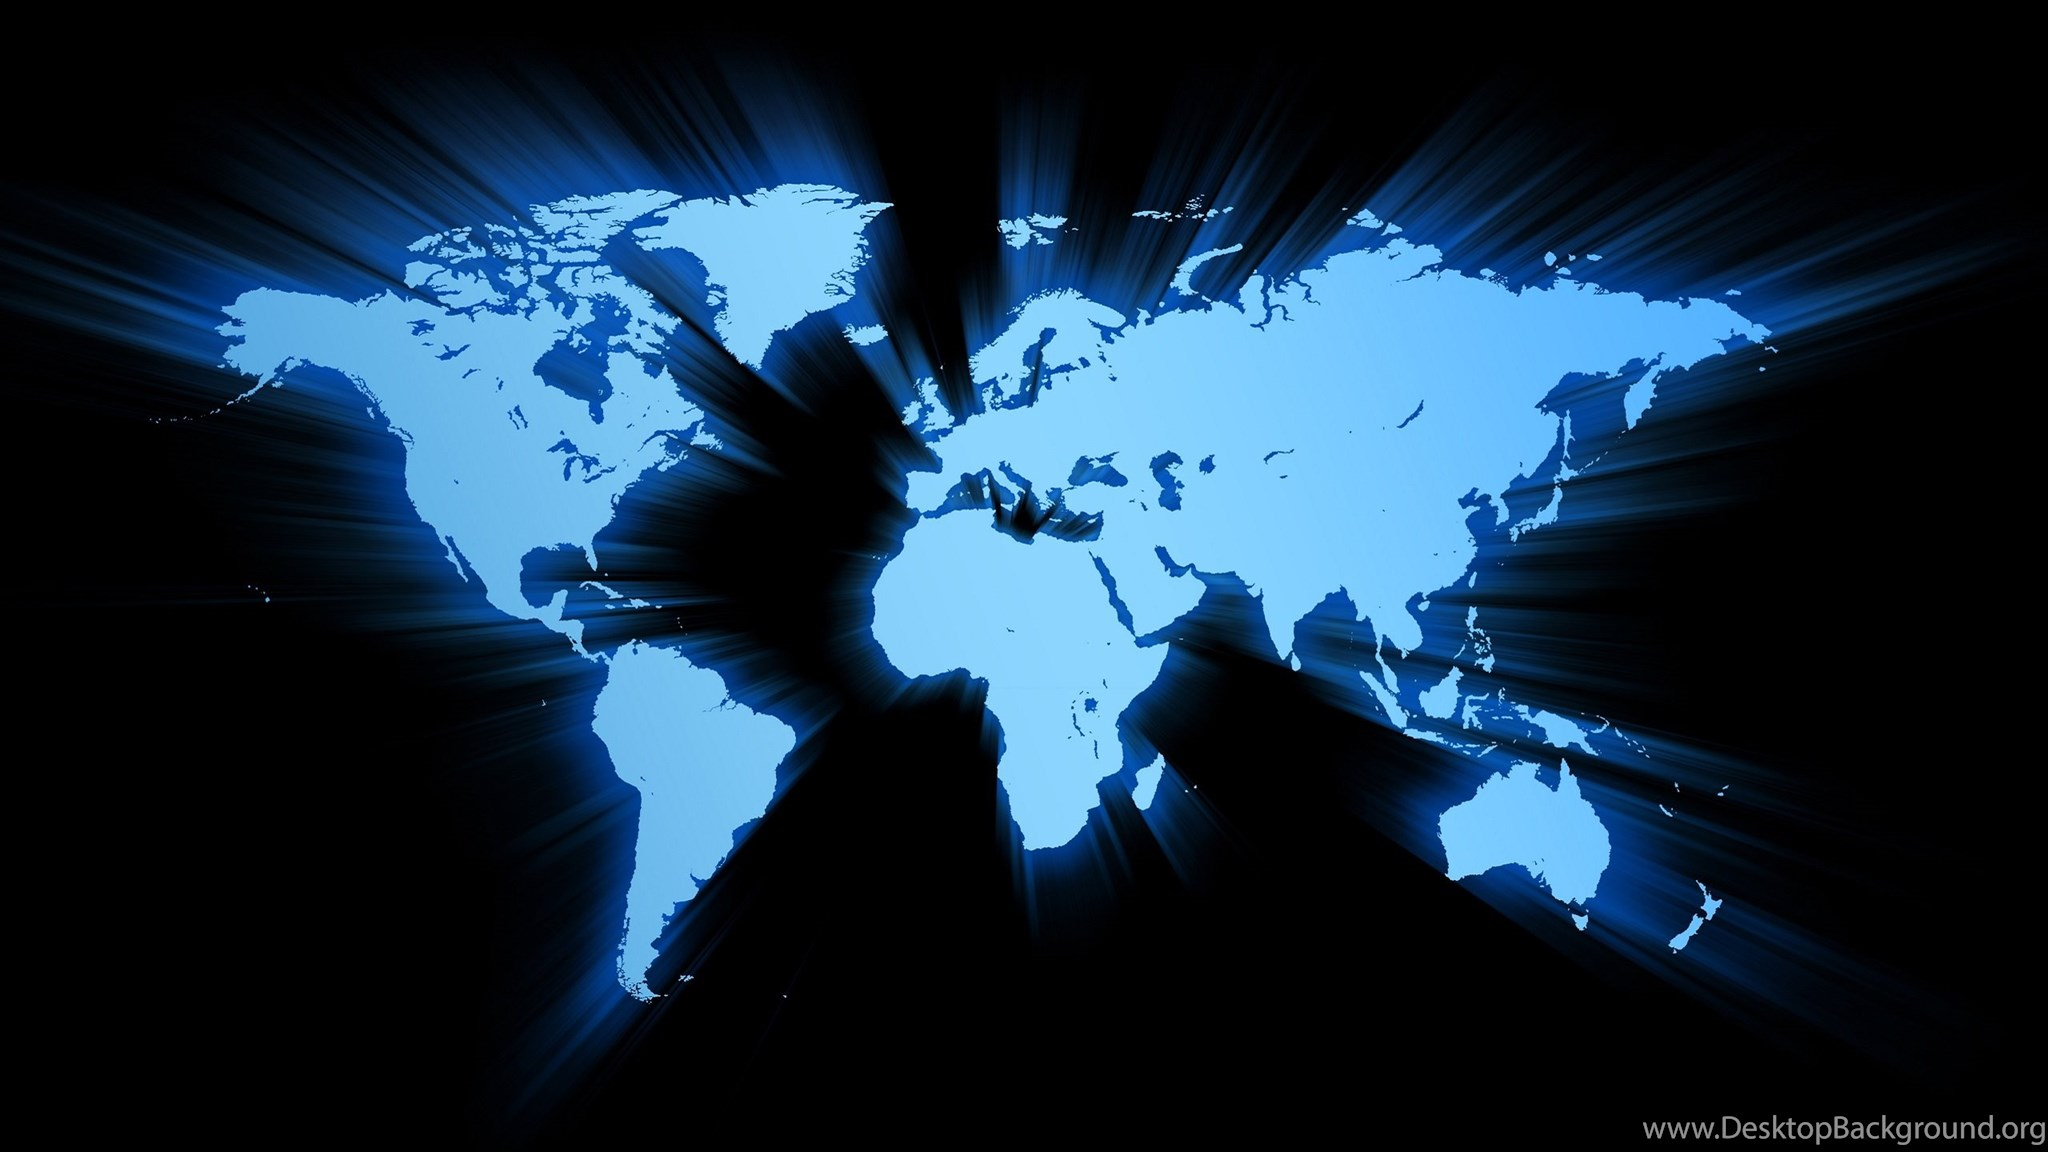 Black blue world map of the wallpapers for pc desktop background widescreen gumiabroncs Gallery